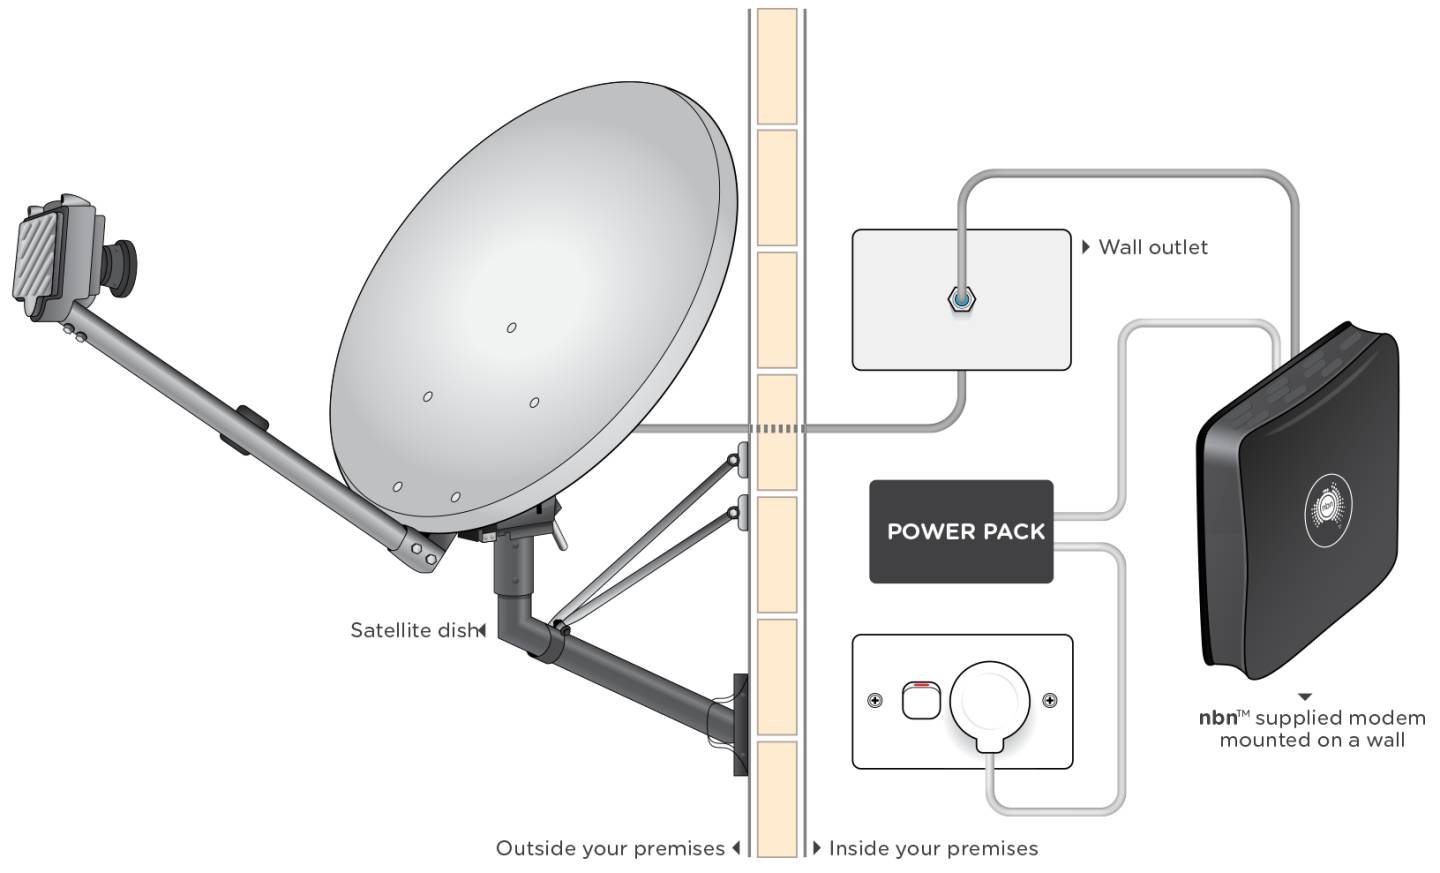 Sky Muster satellite diagram